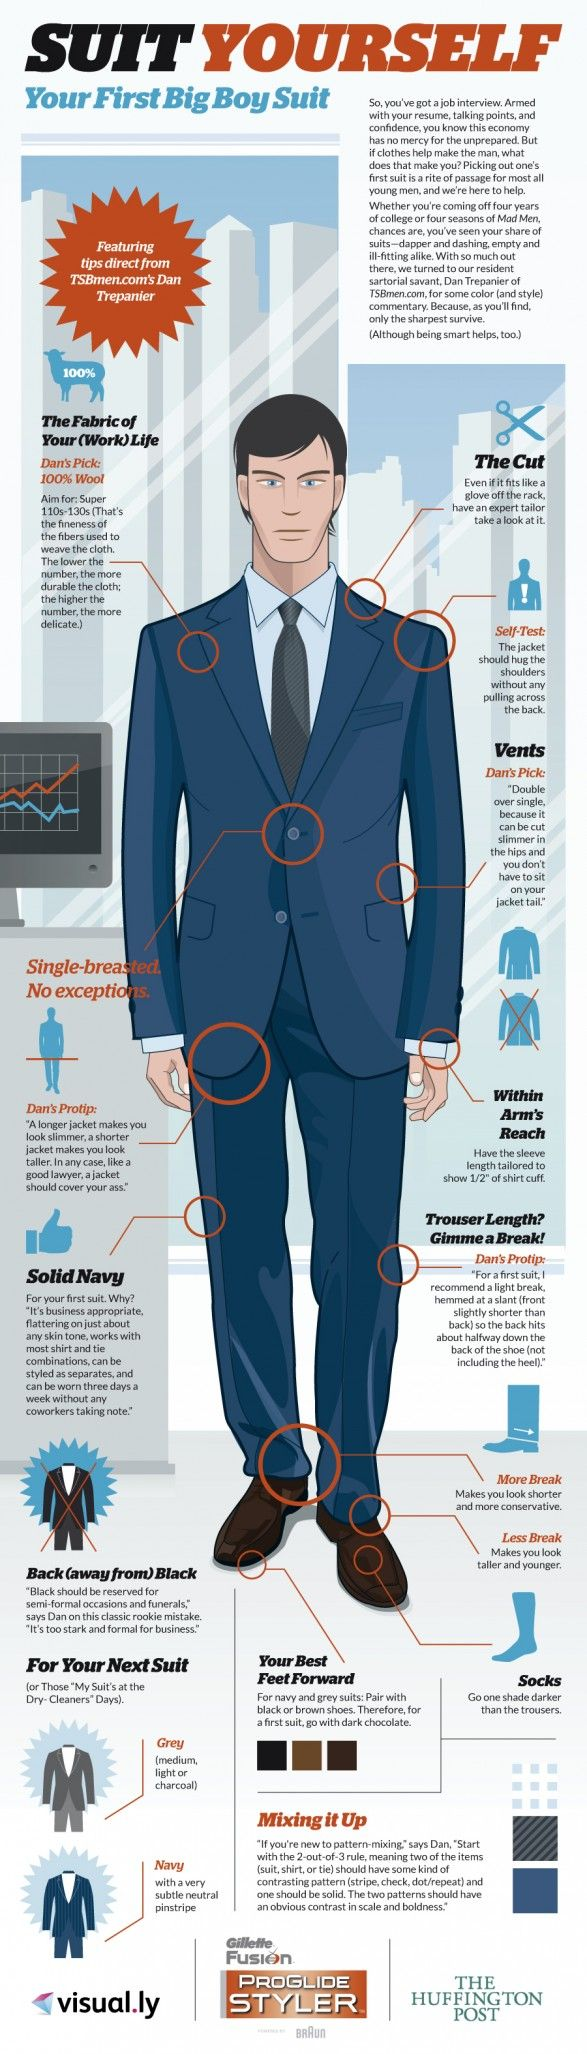 Make sure you're dressed for success with the help of this 'Suit Yourself' Infographic